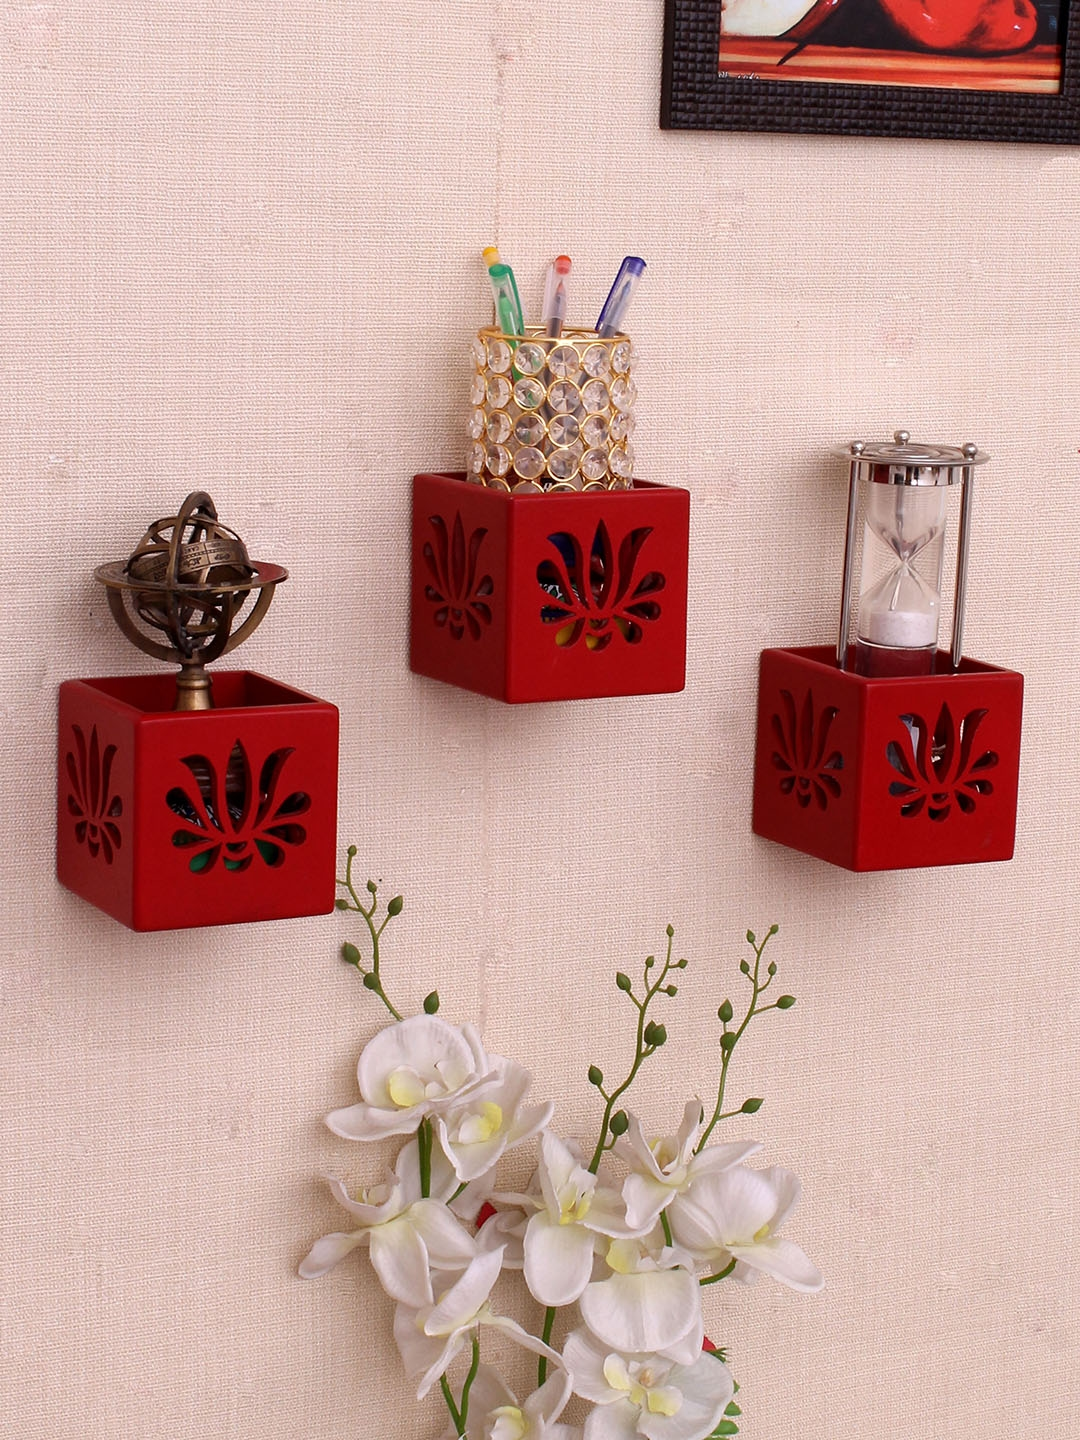 Home Sparkle Red MDF Basic Wall Shelf